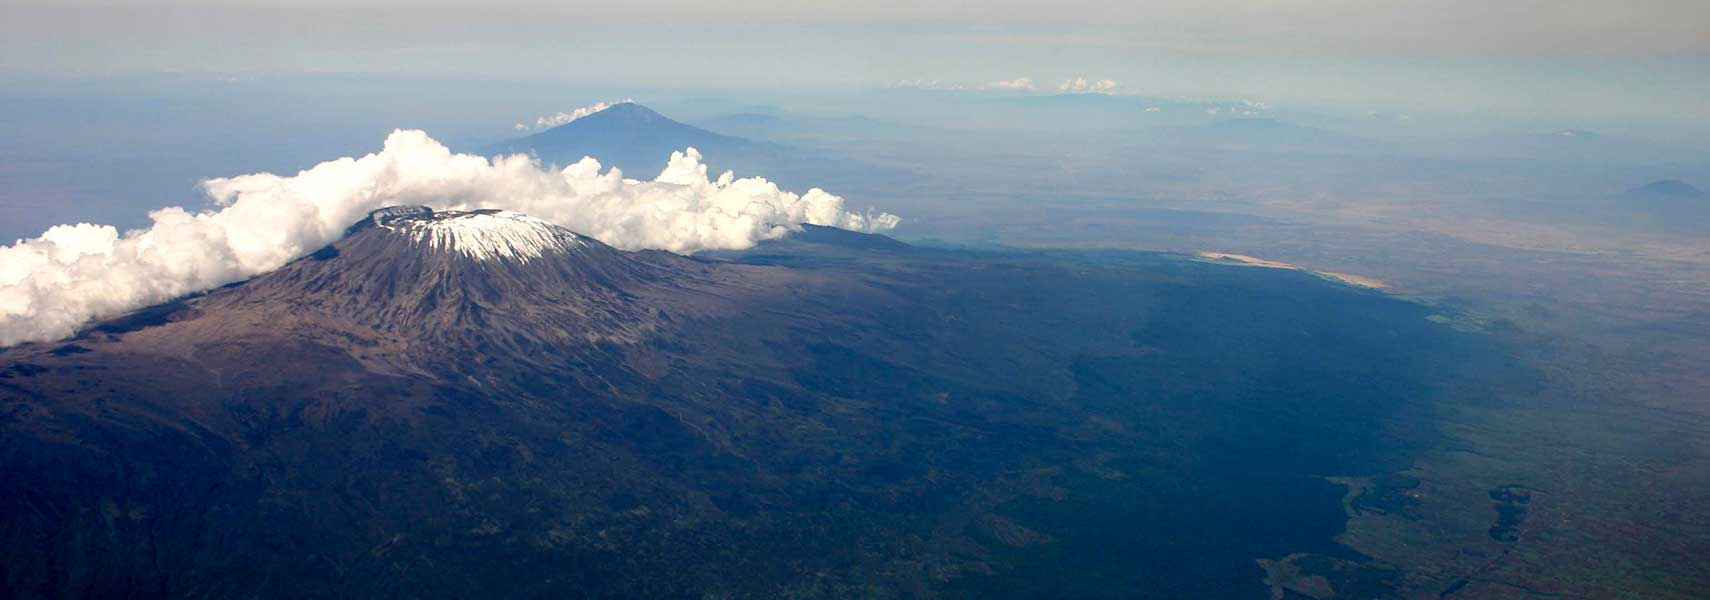 Google Map of Mount Kilimanjaro, Tanzania - Nations Online Project